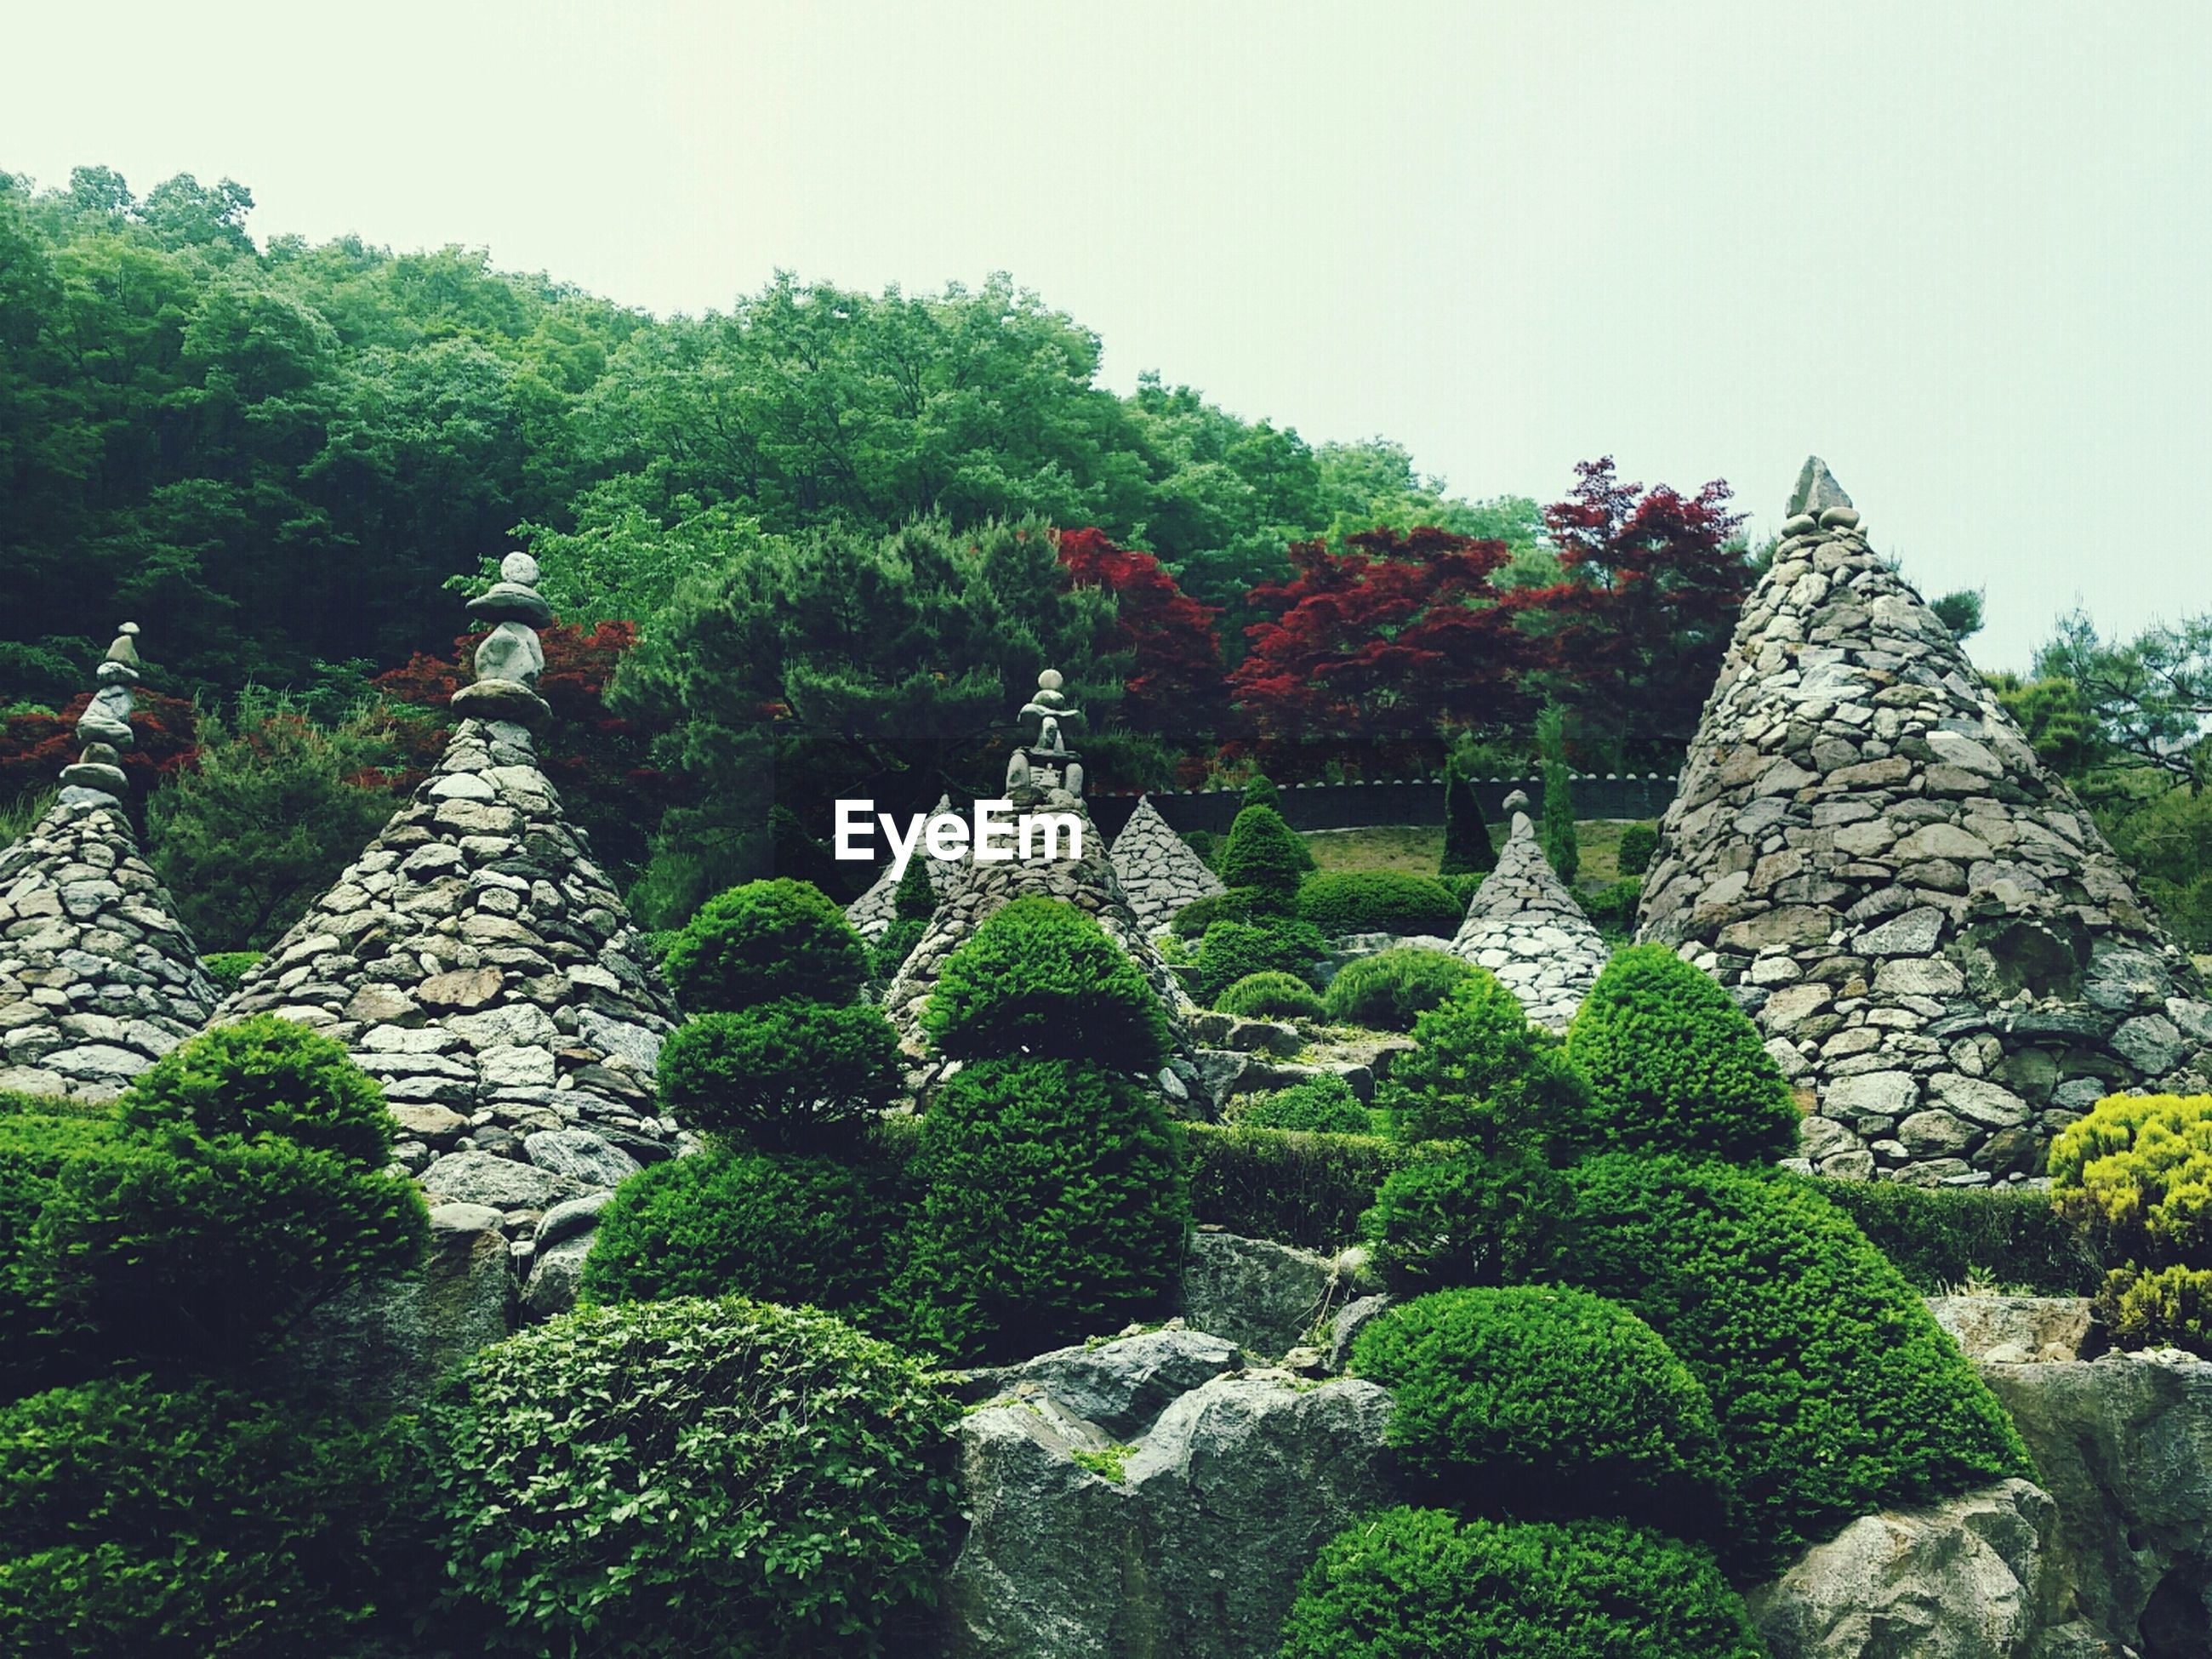 tree, growth, green color, plant, clear sky, nature, low angle view, built structure, tranquility, day, religion, lush foliage, outdoors, architecture, beauty in nature, formal garden, spirituality, sky, rock - object